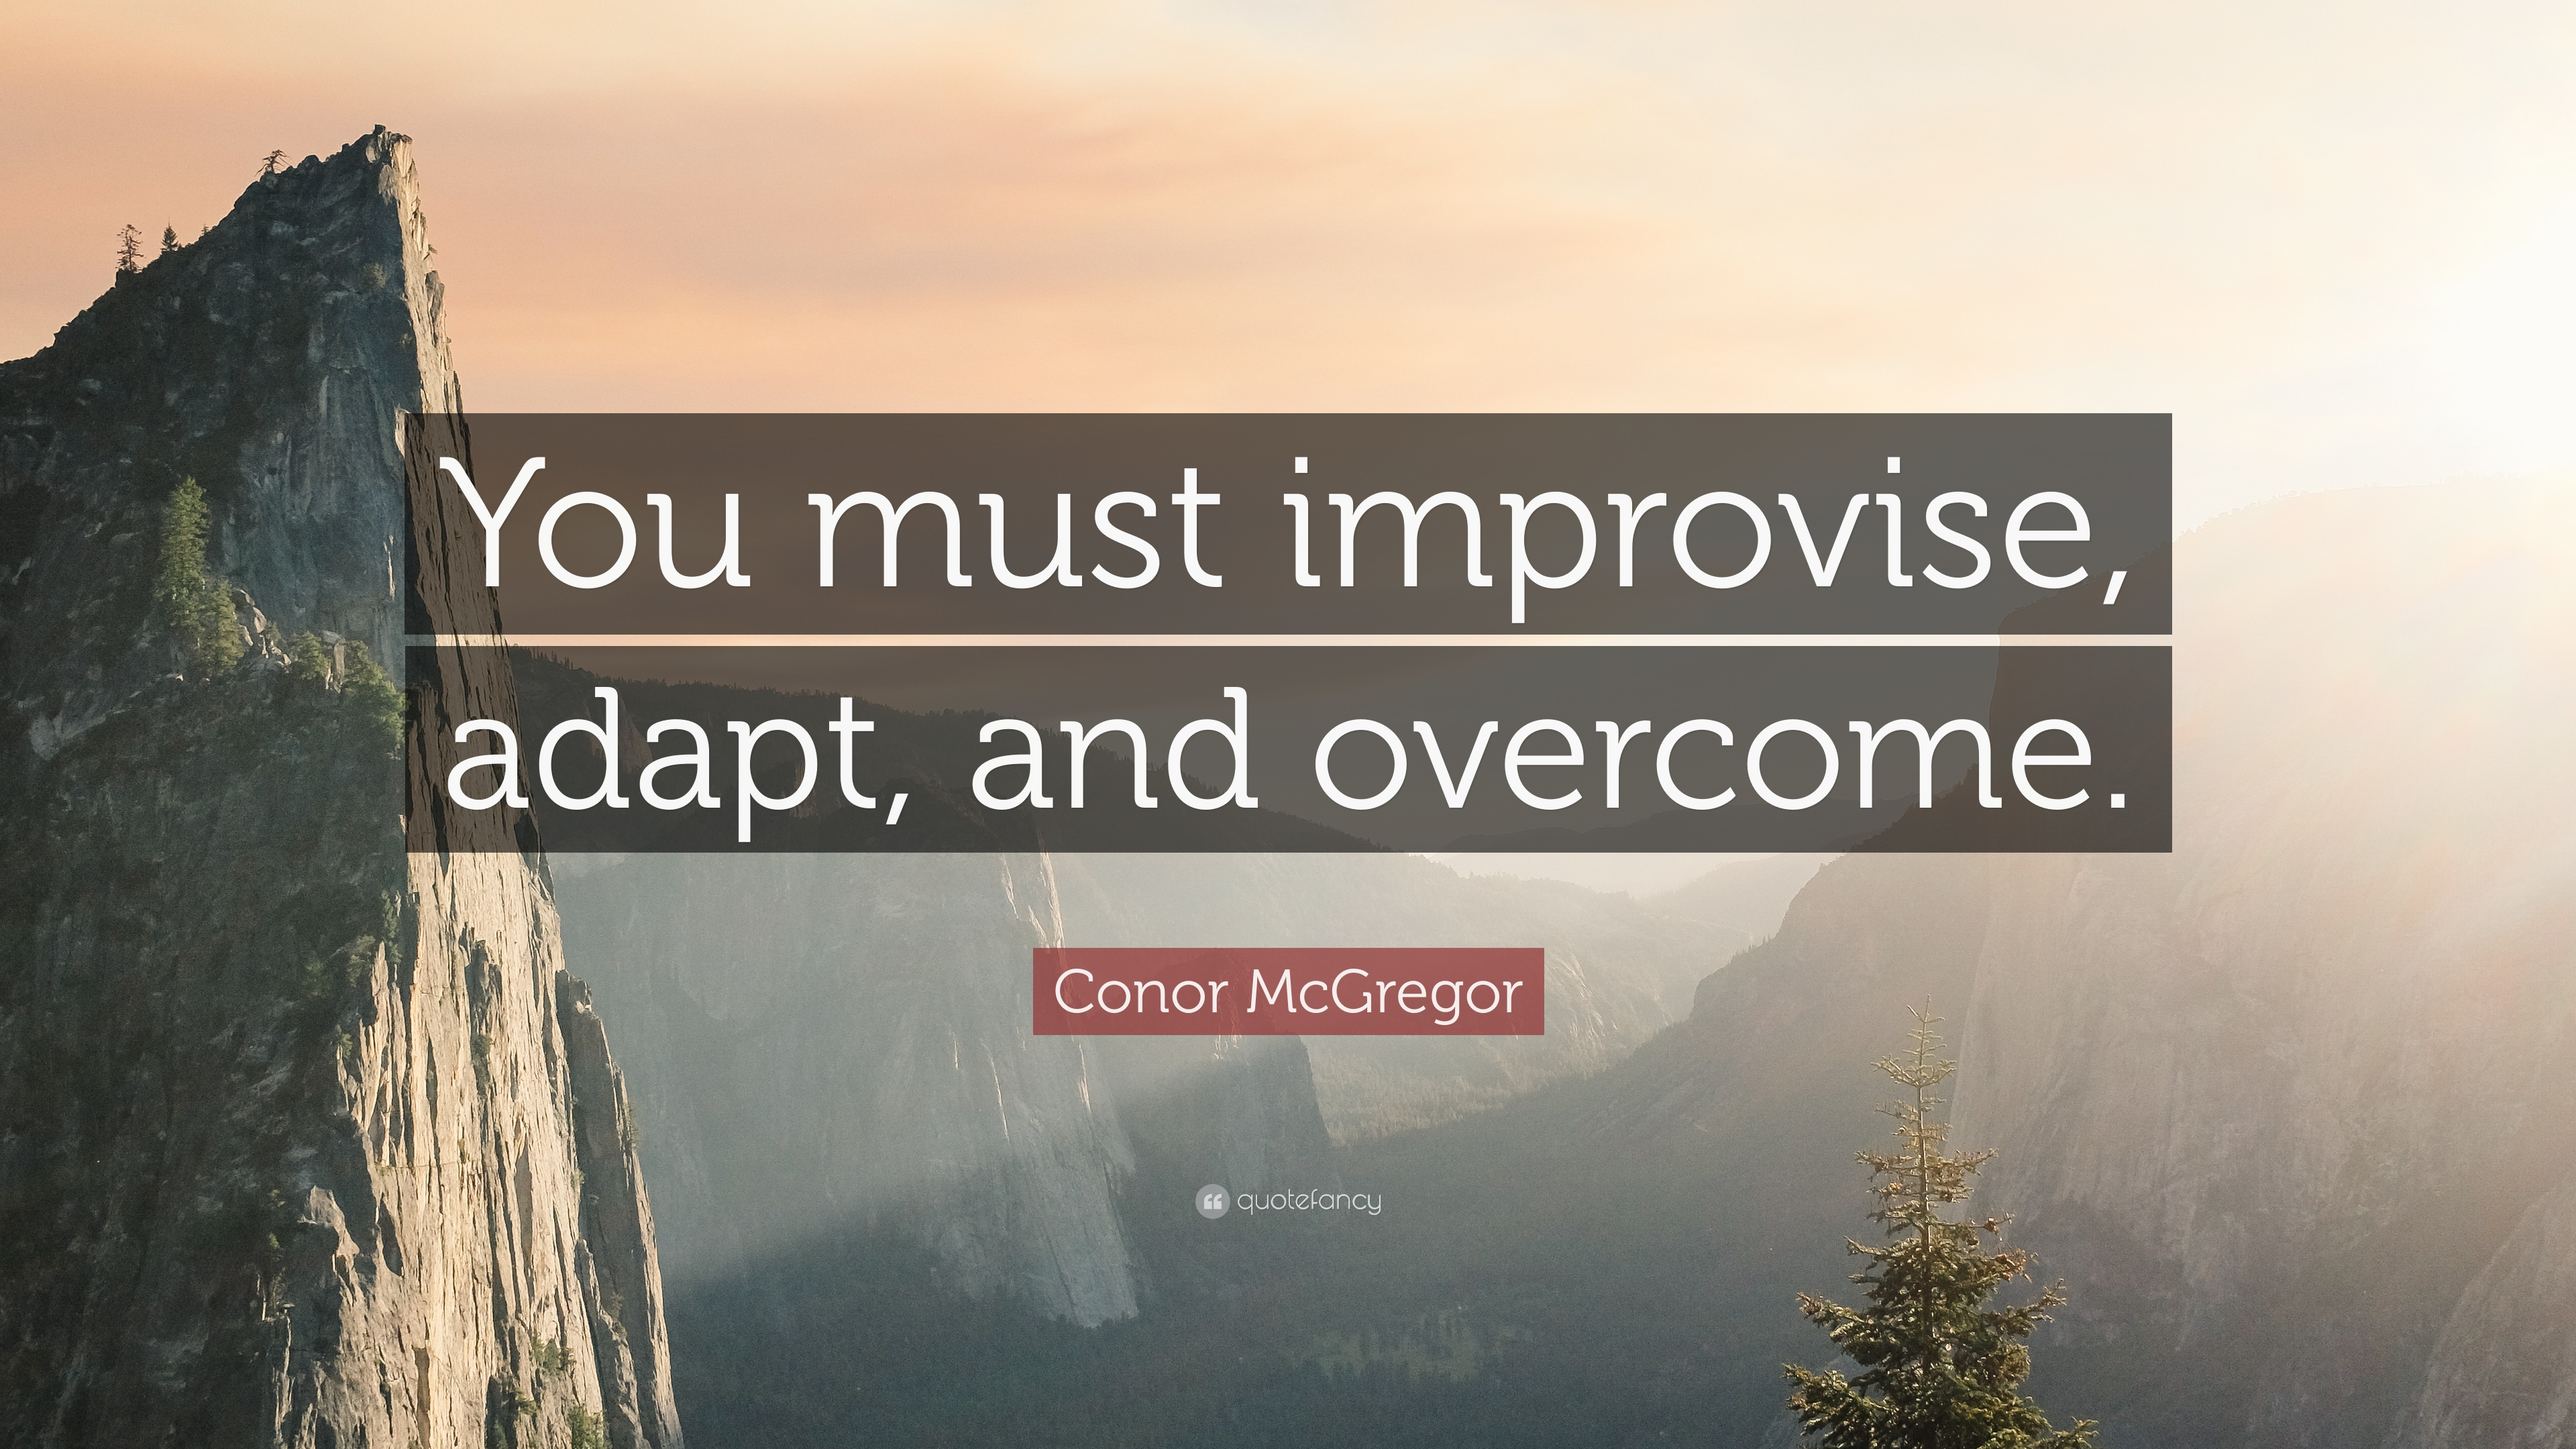 conor mcgregor quote you must improvise adapt and overcome 12